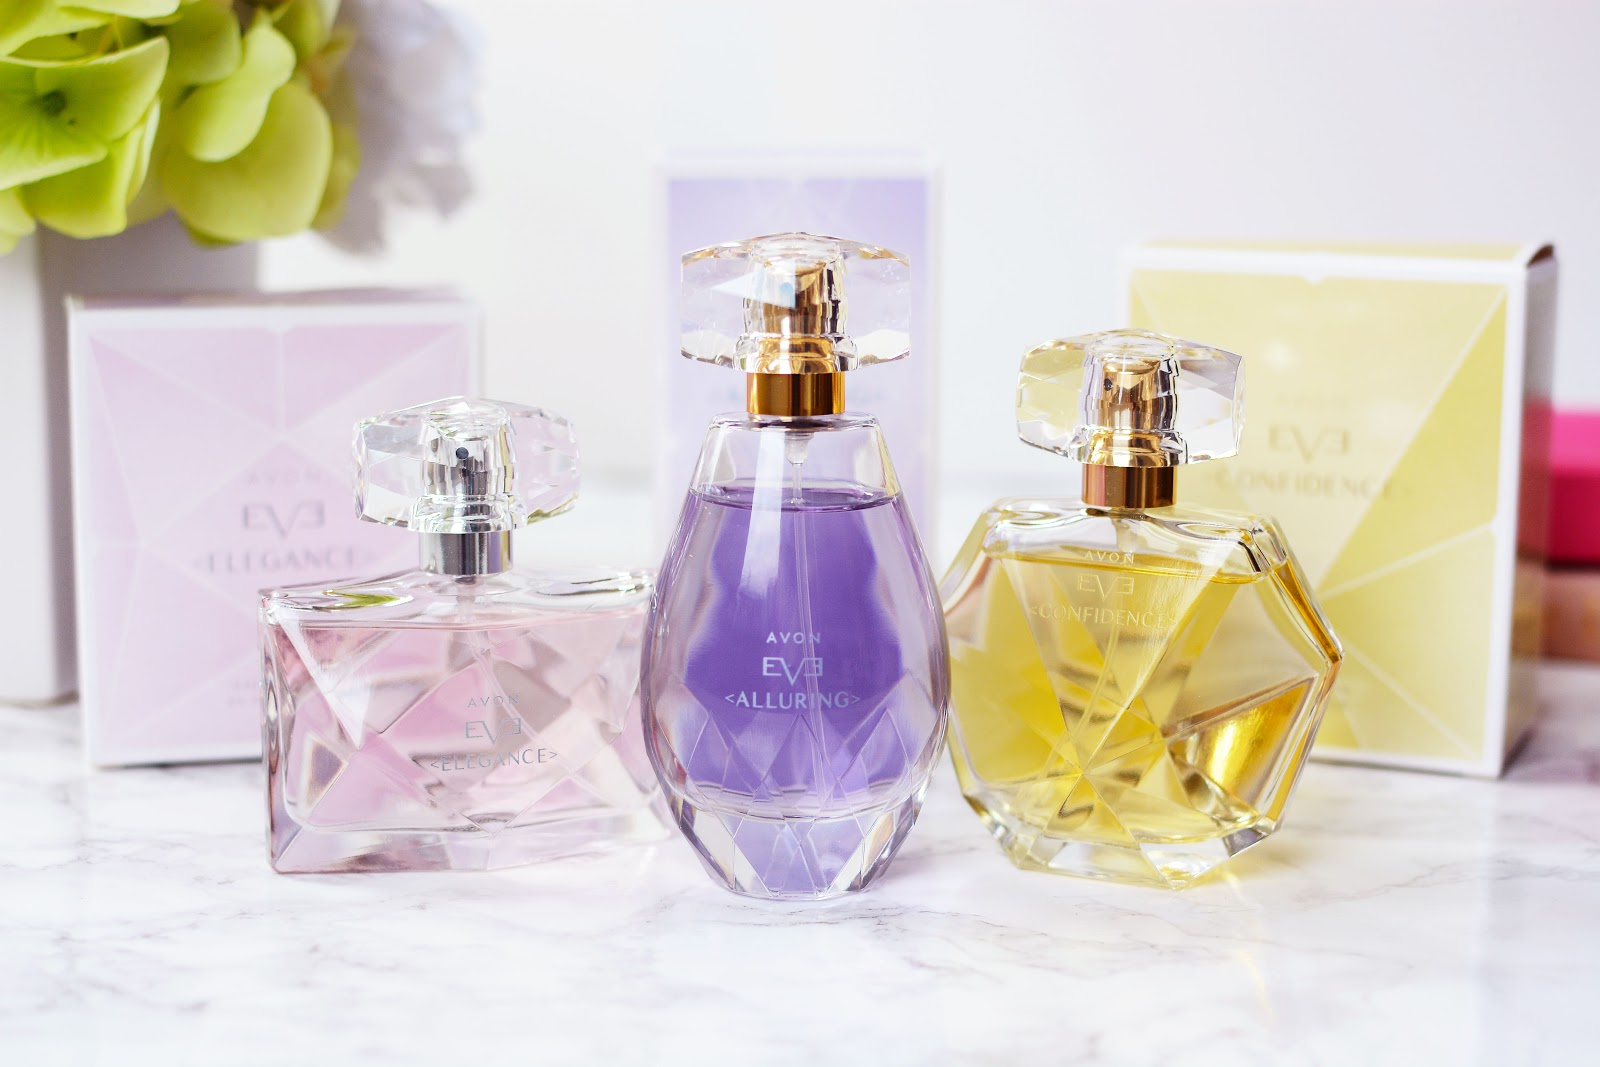 AVON perfume from the EVE Discovery collection, avon eve discovery perfume range